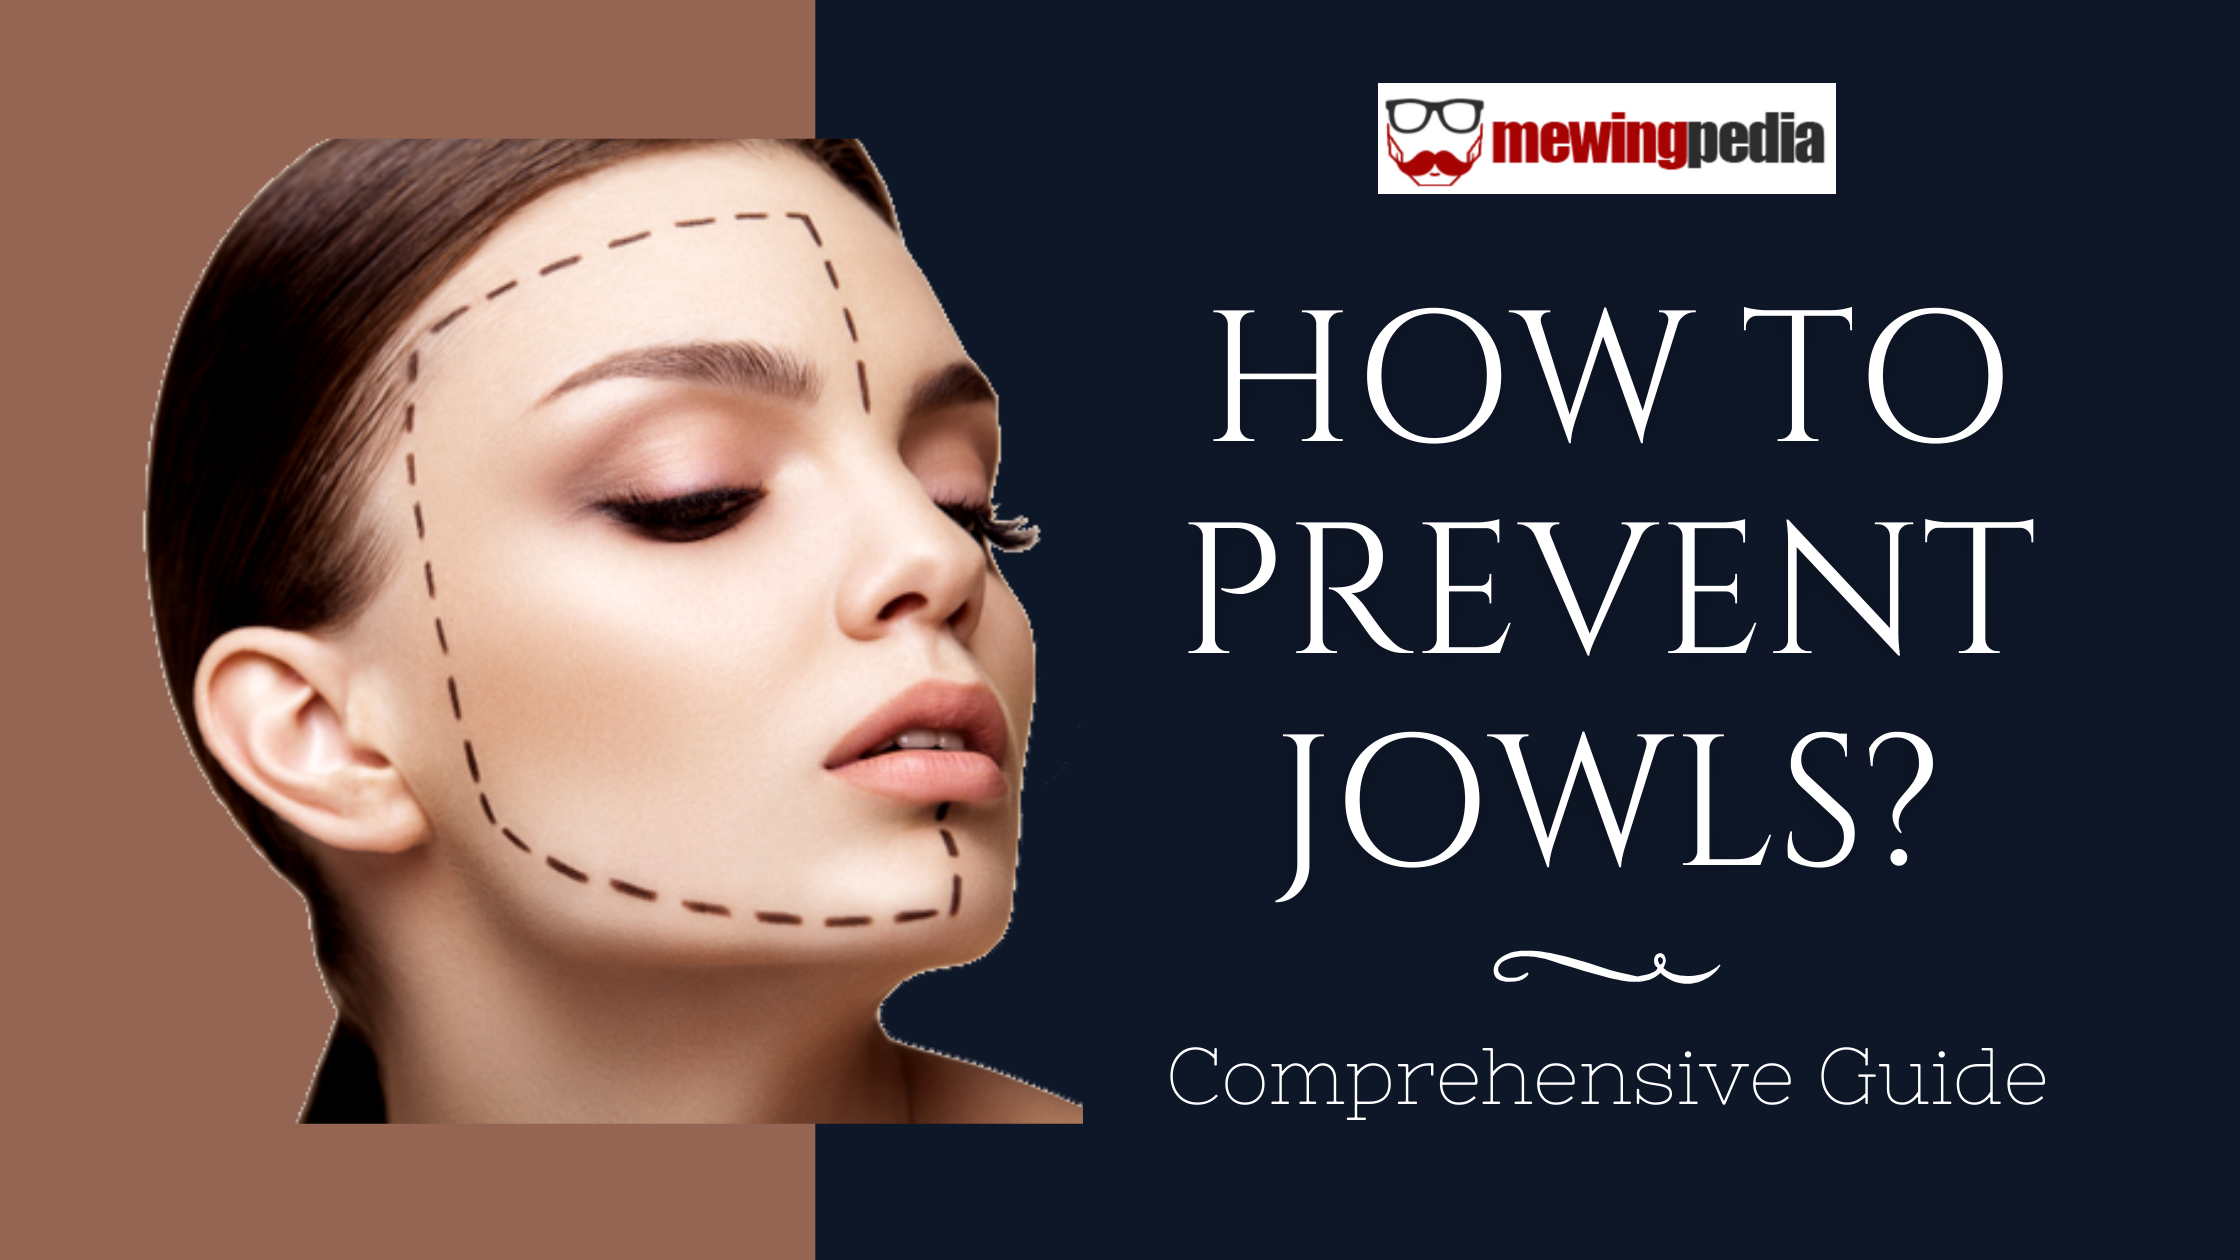 How To Prevent Jowls? – Comprehensive Guide